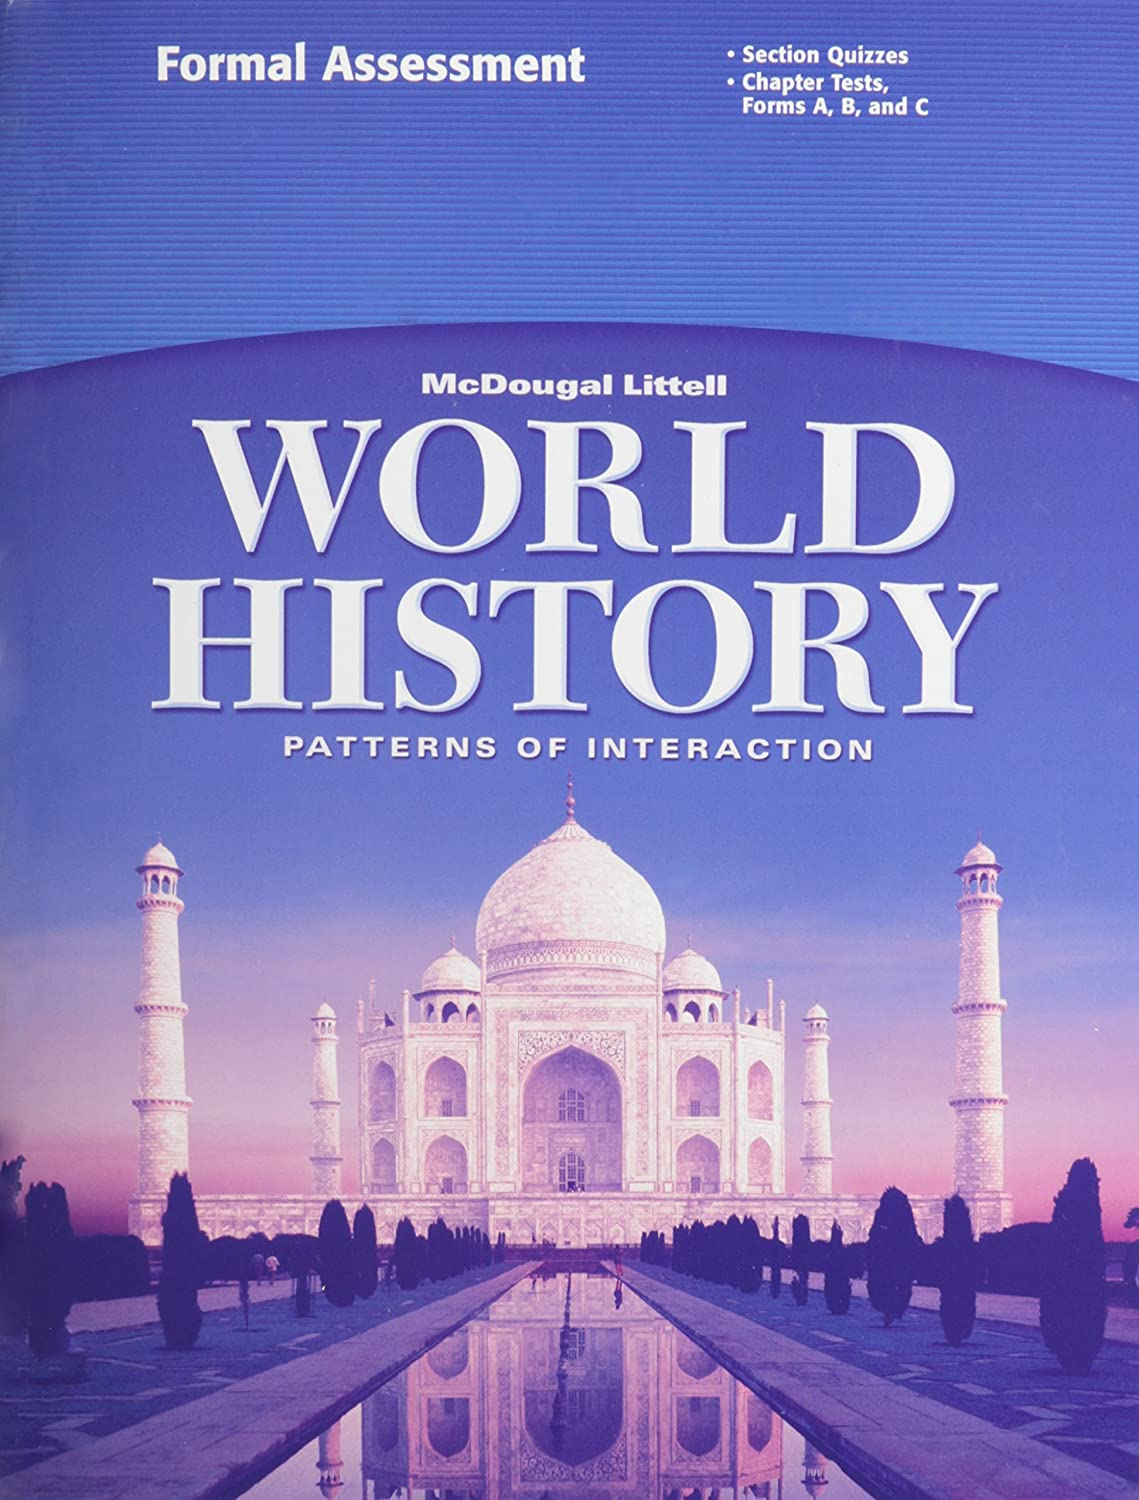 worksheet World History Patterns Of Interaction Worksheets amazon com world history patterns of interaction grades 9 12 formal assessment mcdougal littell everything else